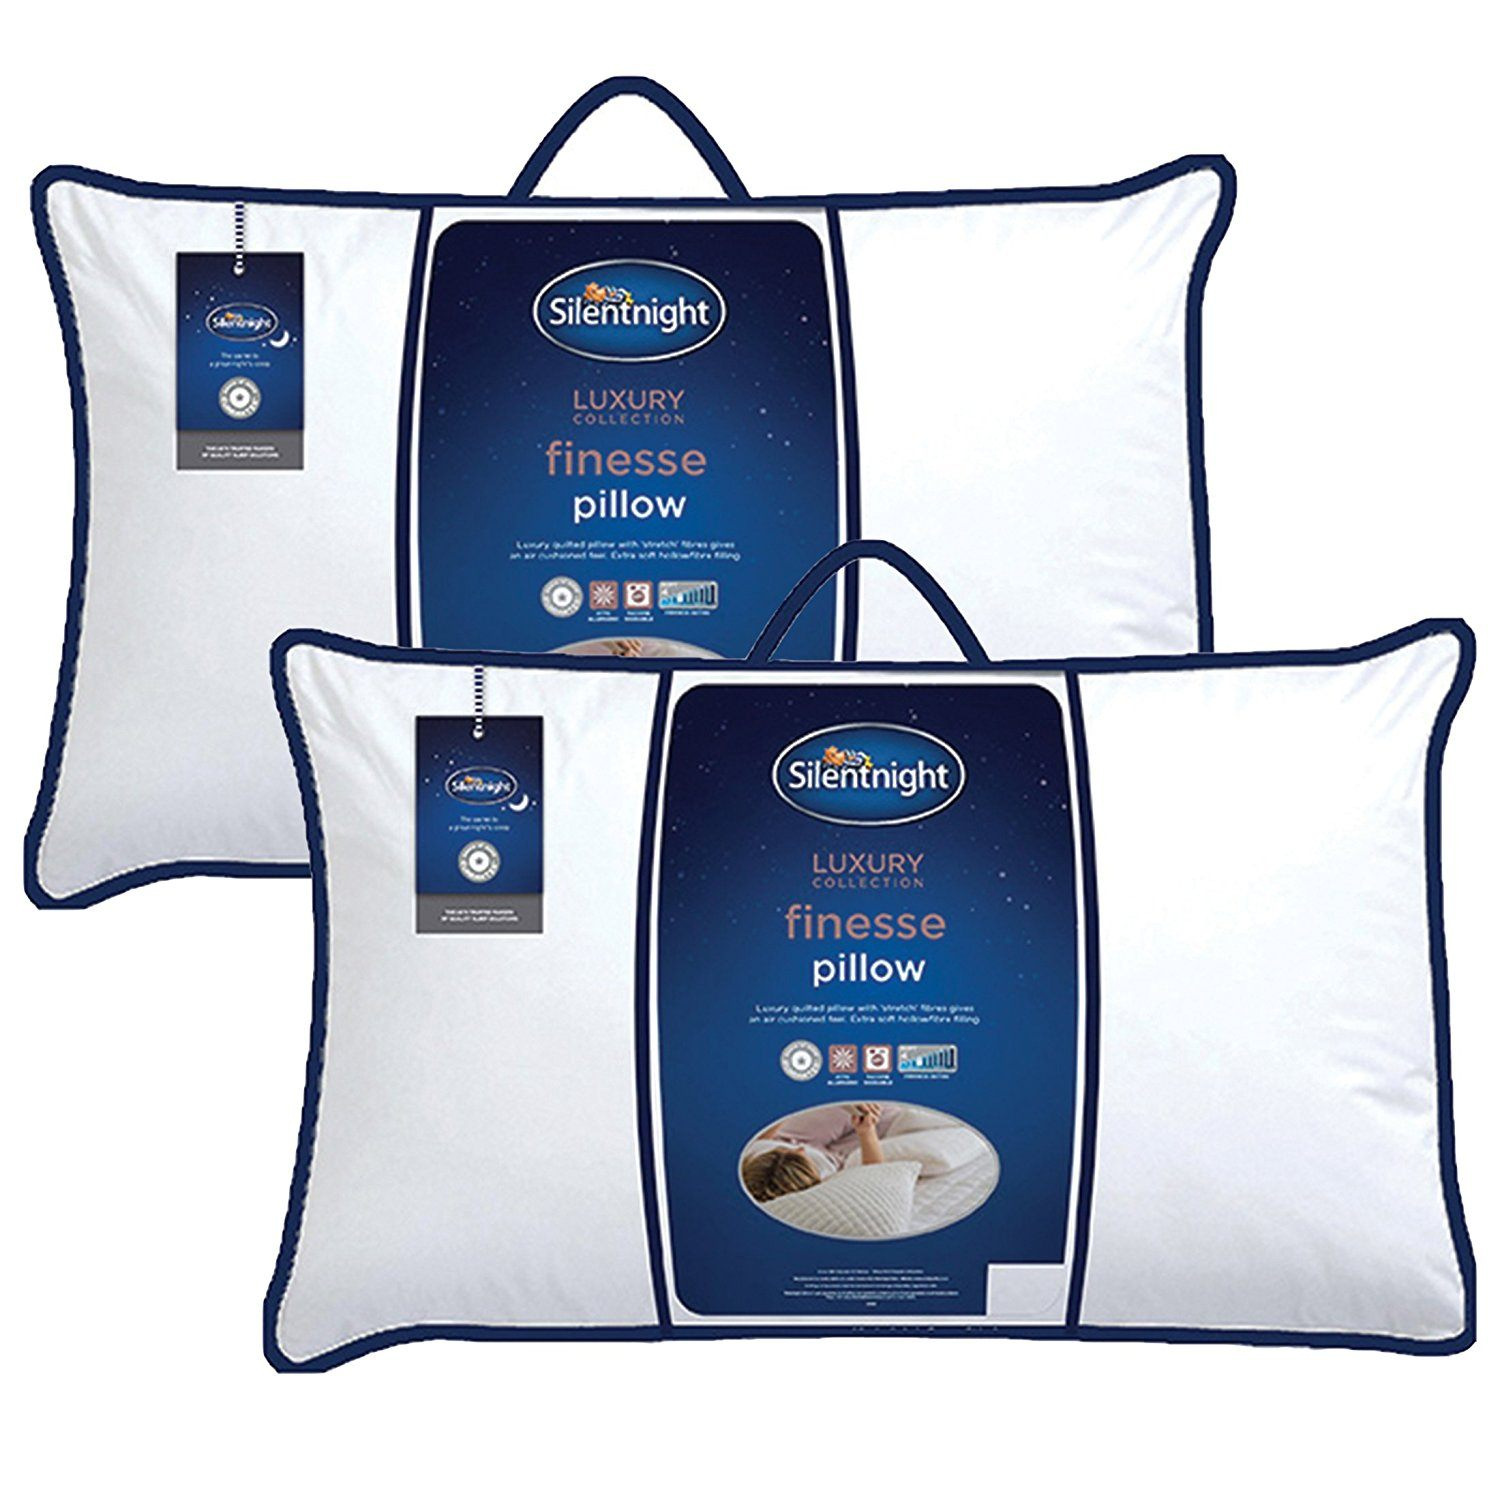 Silentnight Finesse Pillow Reviews